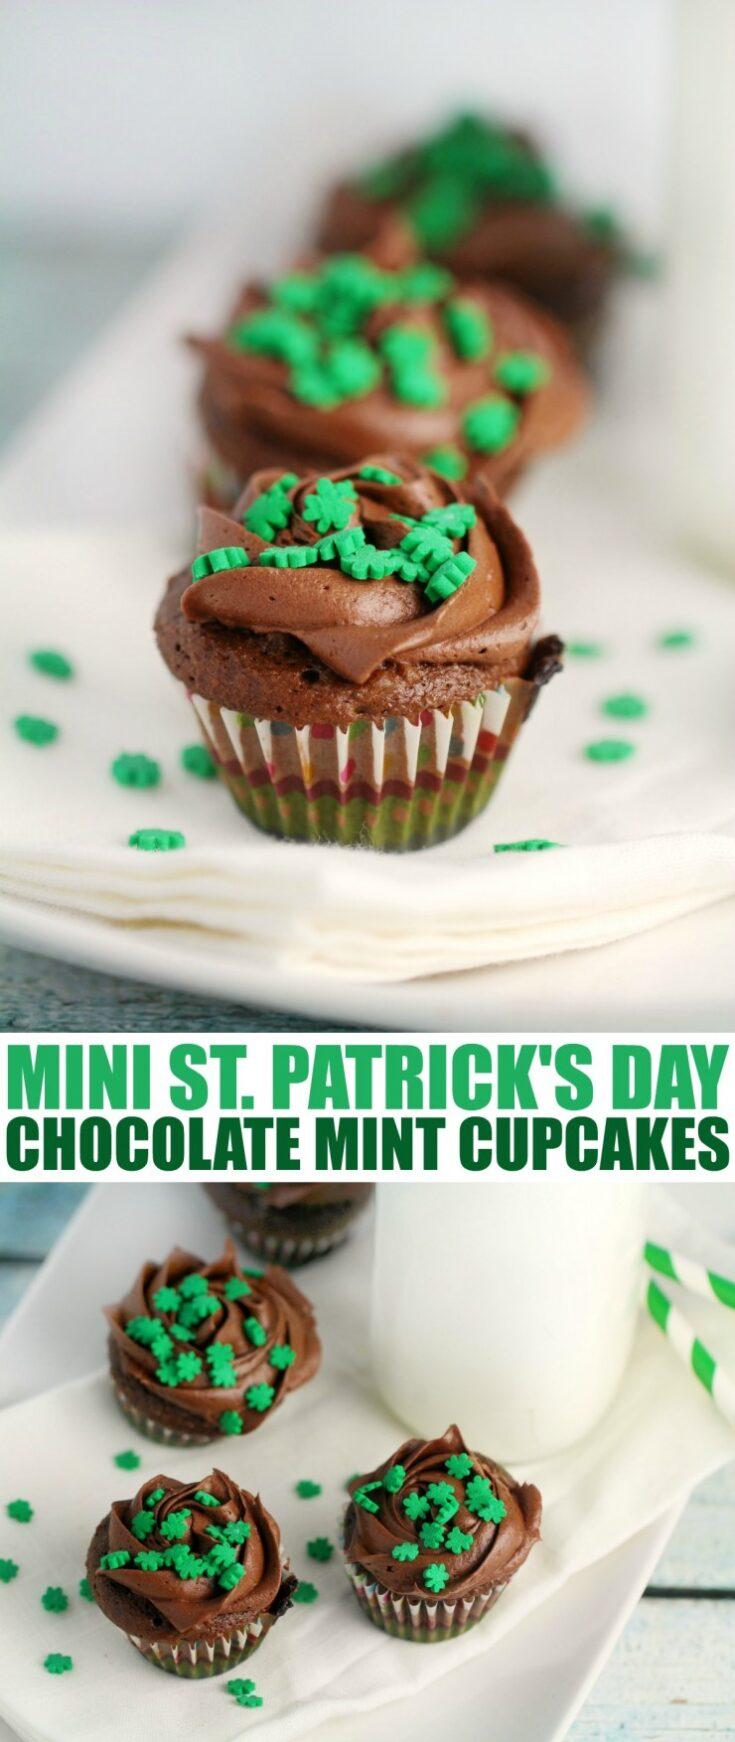 Mini St. Patrick's Day Chocolate Mint Cupcakes